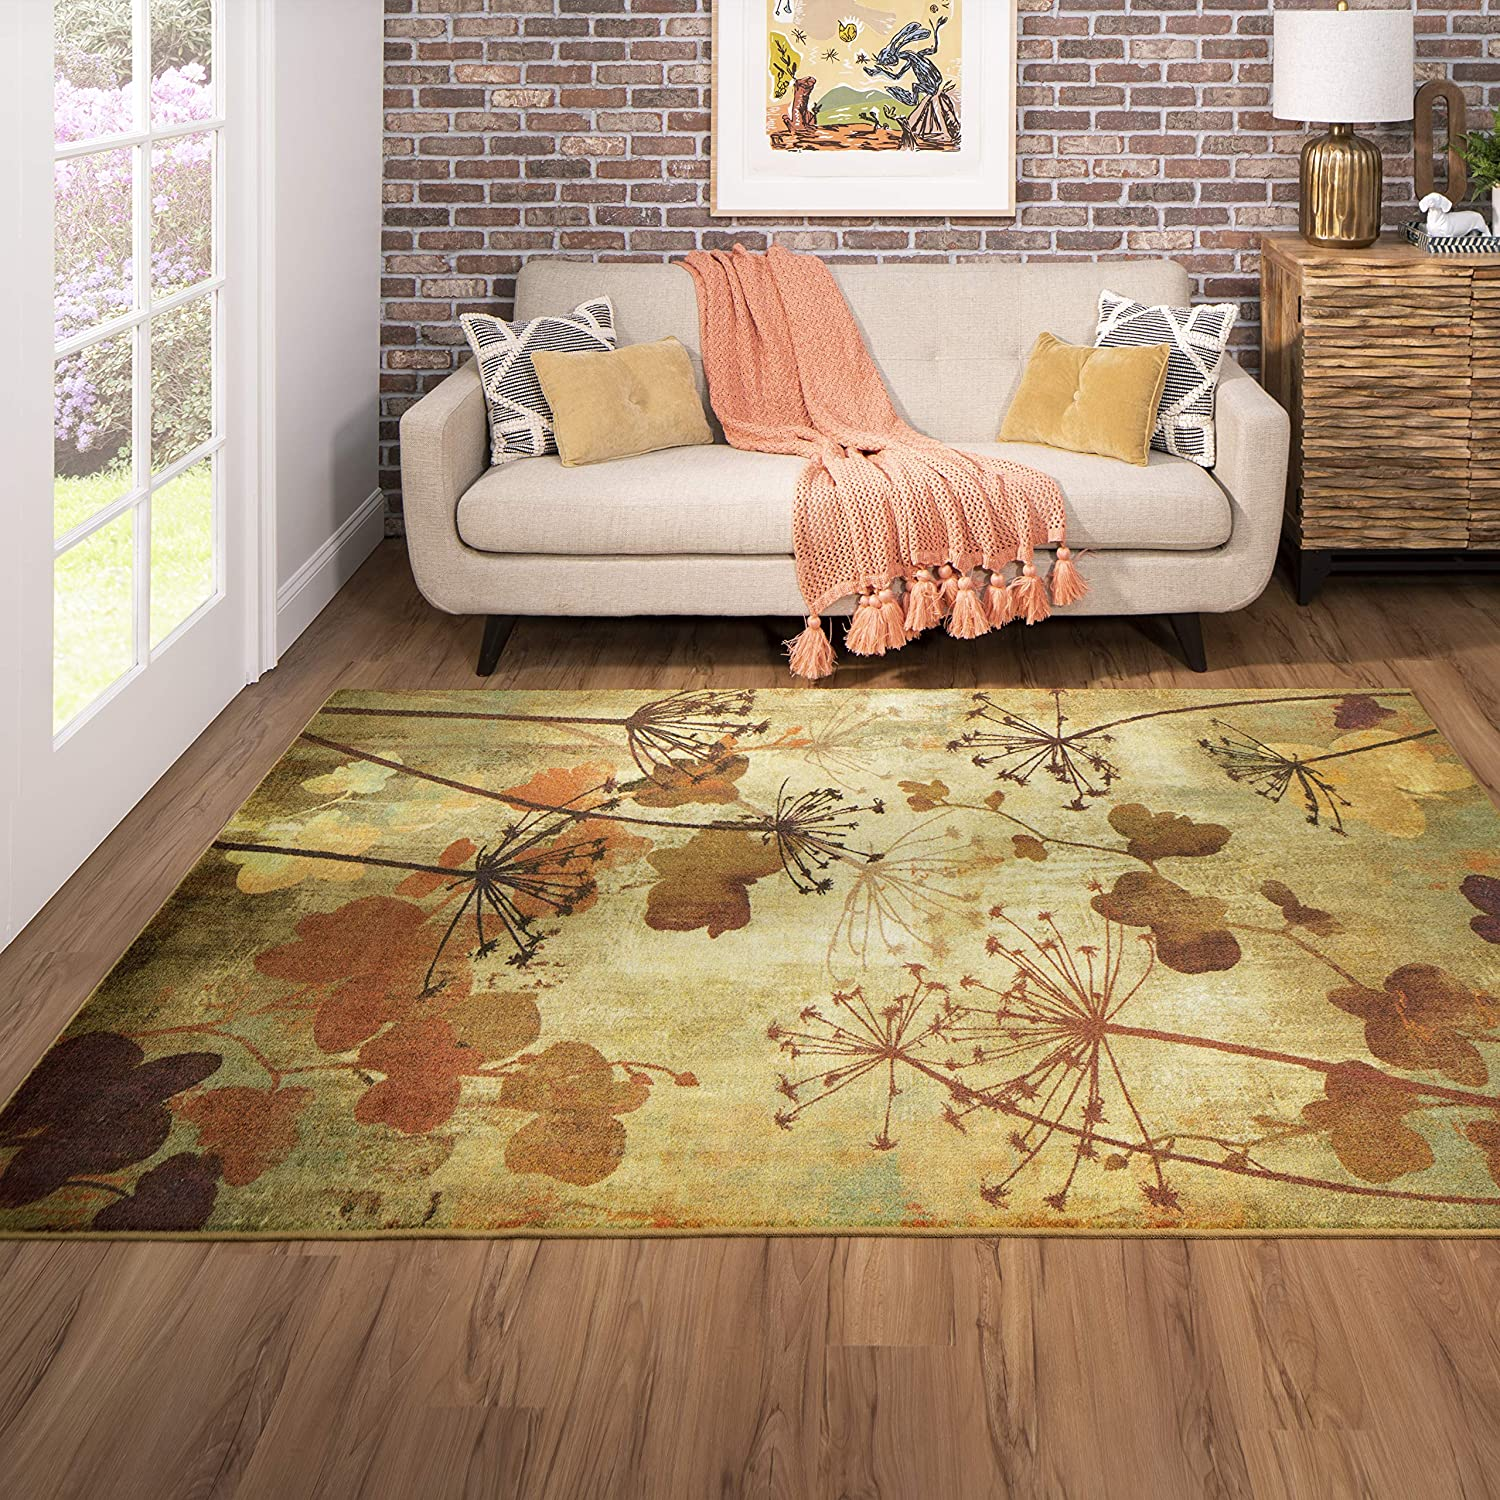 Mohawk Home Rust Autumn Max 70% OFF Max 83% OFF Branches Rug 6'x9' Area